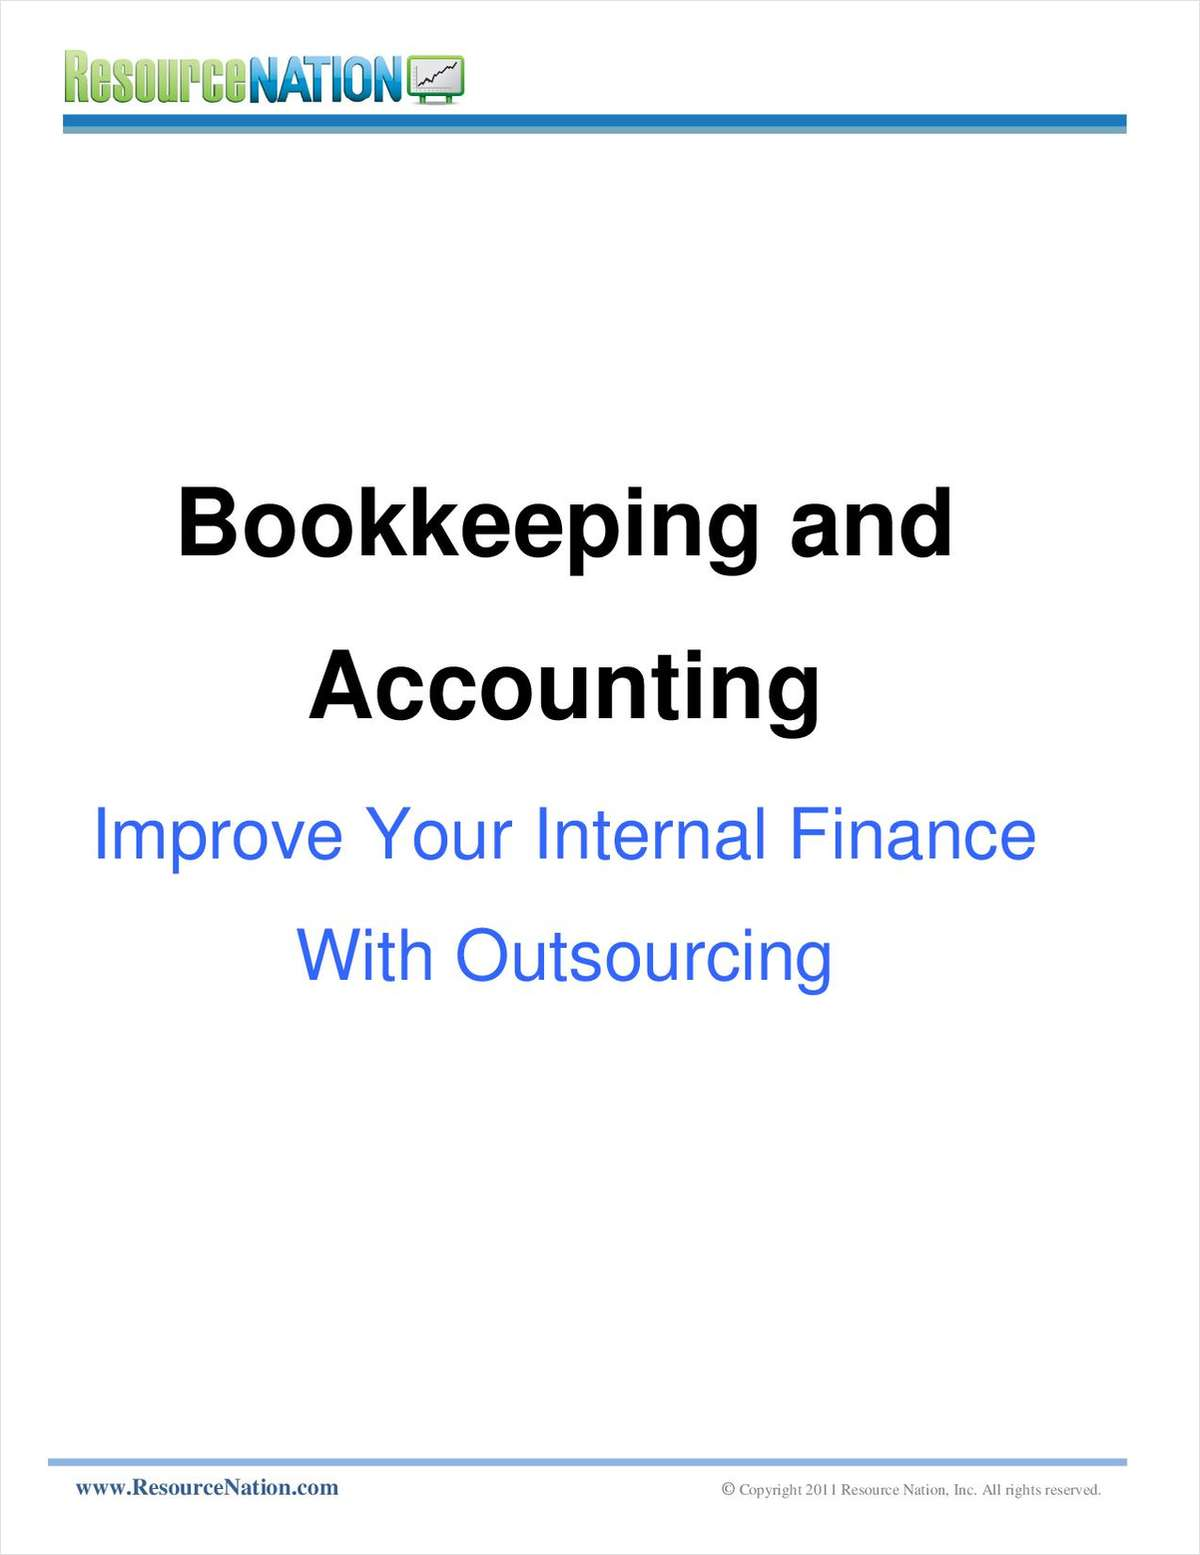 How Professional Accounting Services Companies Can Reduce Your Business Expenses